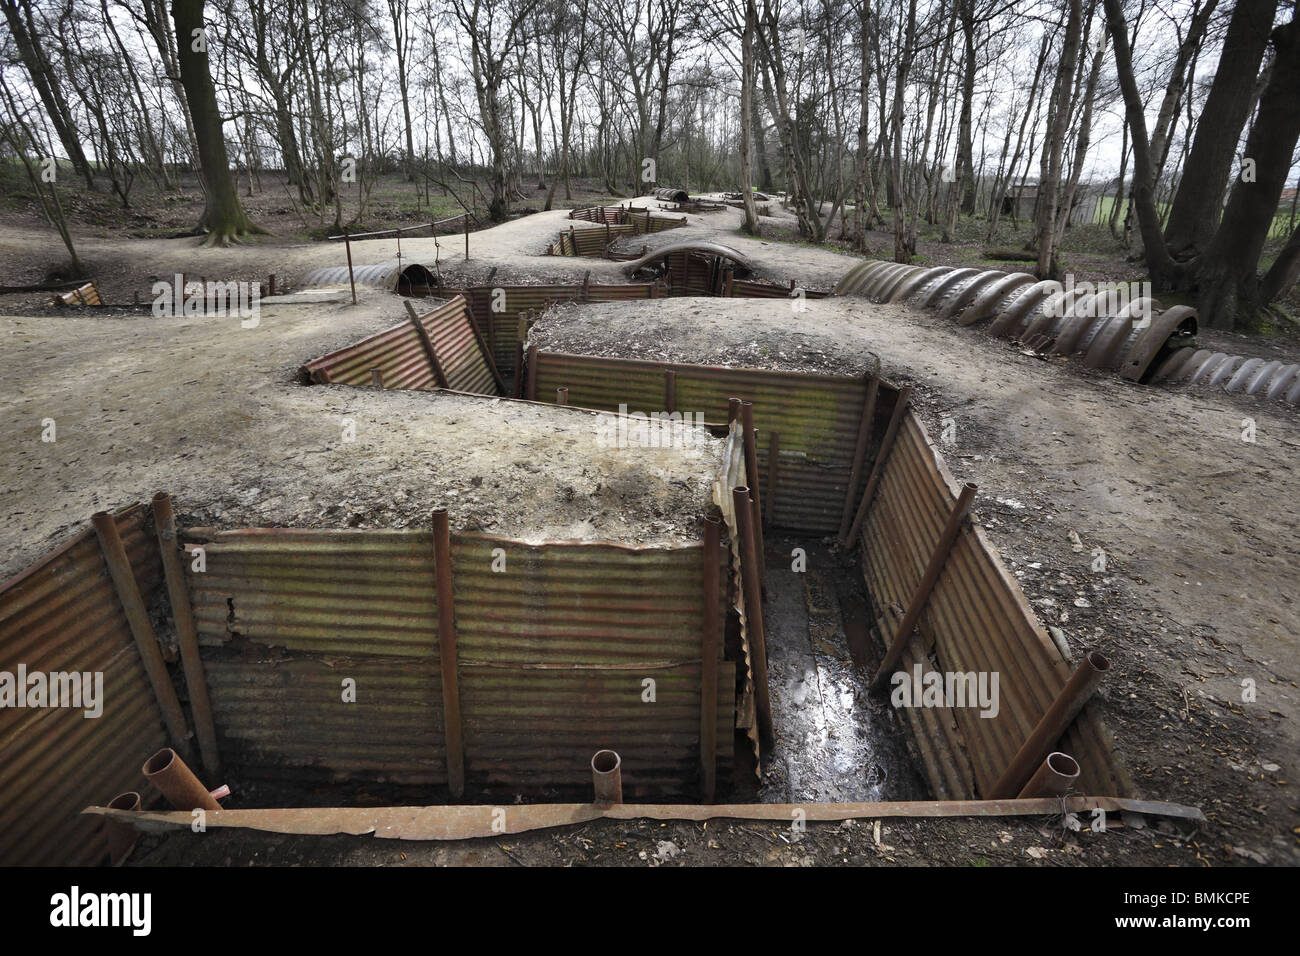 World War 1 trenches at Sanctuary Wood near Ypres in Belgium. - Stock Image